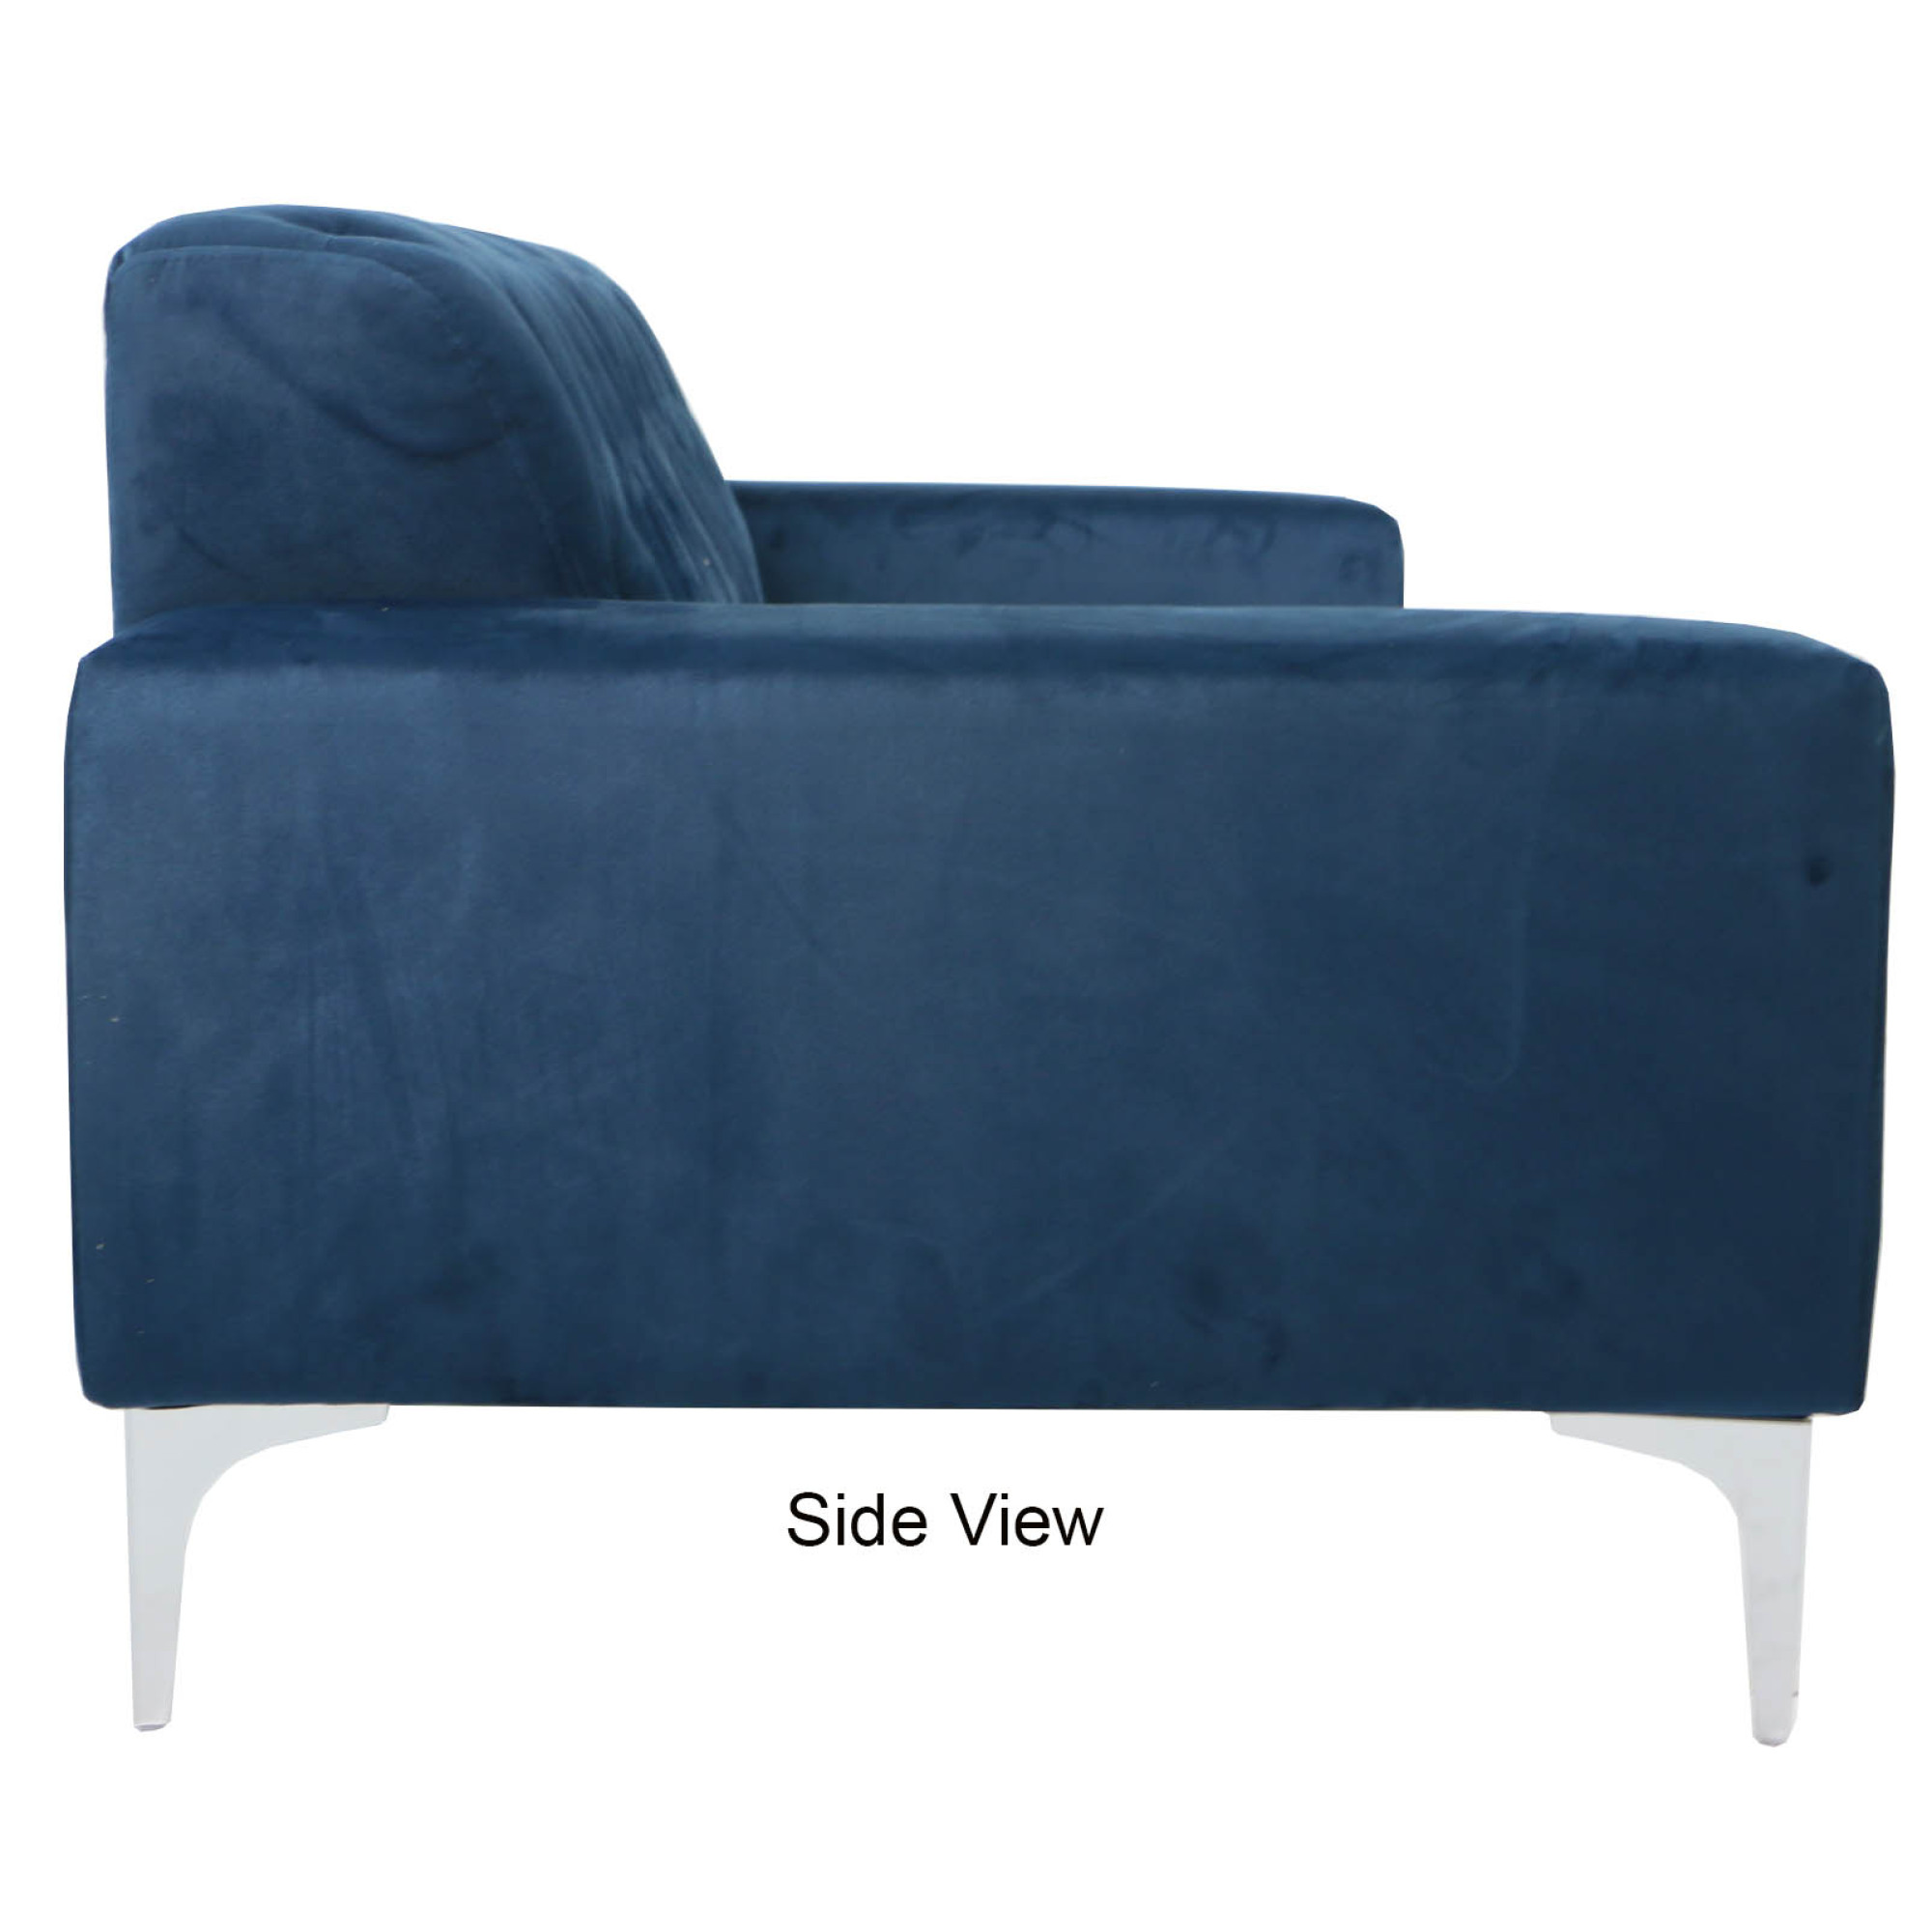 sofas dark blue modern sleeper sofa comfortable cecilie 3 seater furniture home decor fortytwo 20 customer reviews